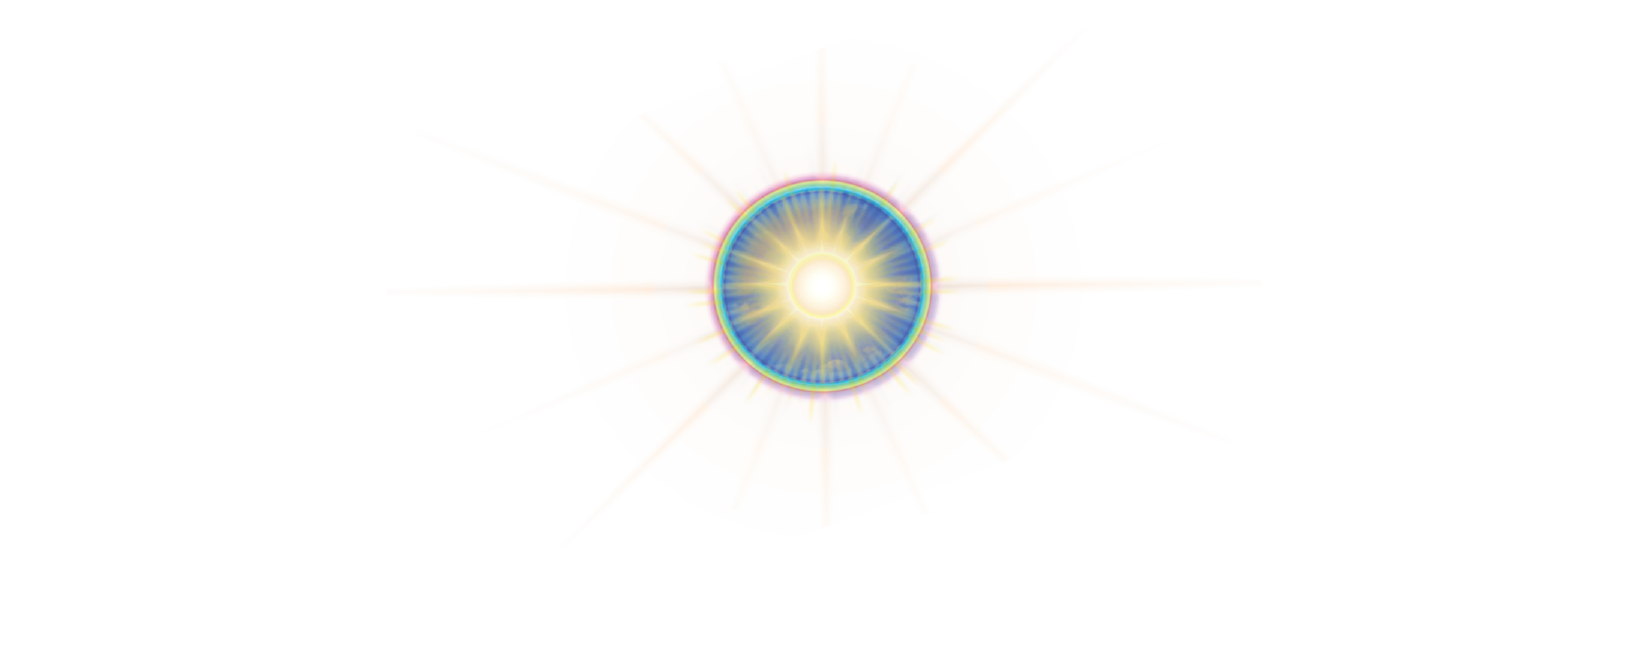 ClearLight Meditation Institute - logo white